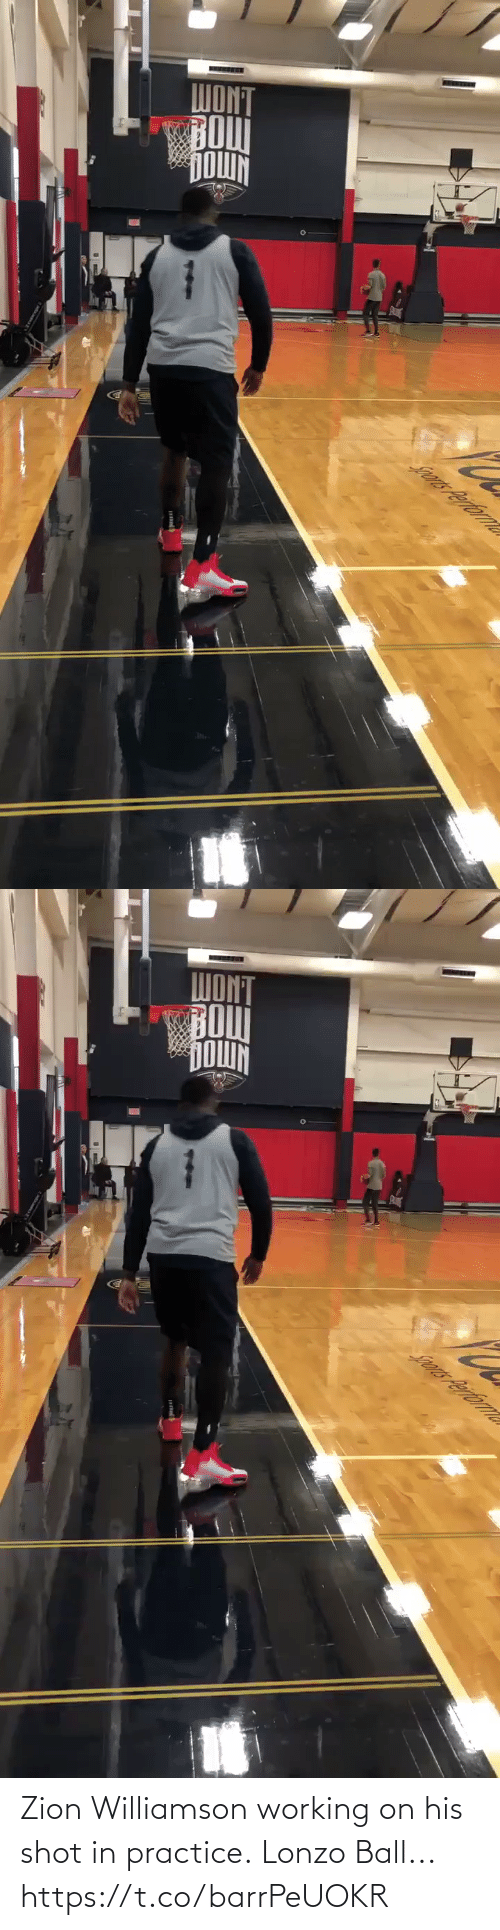 Practice: WONT  BOU  DOWN  Jrs Perfornle   Sors Performle Zion Williamson working on his shot in practice.  Lonzo Ball... https://t.co/barrPeUOKR